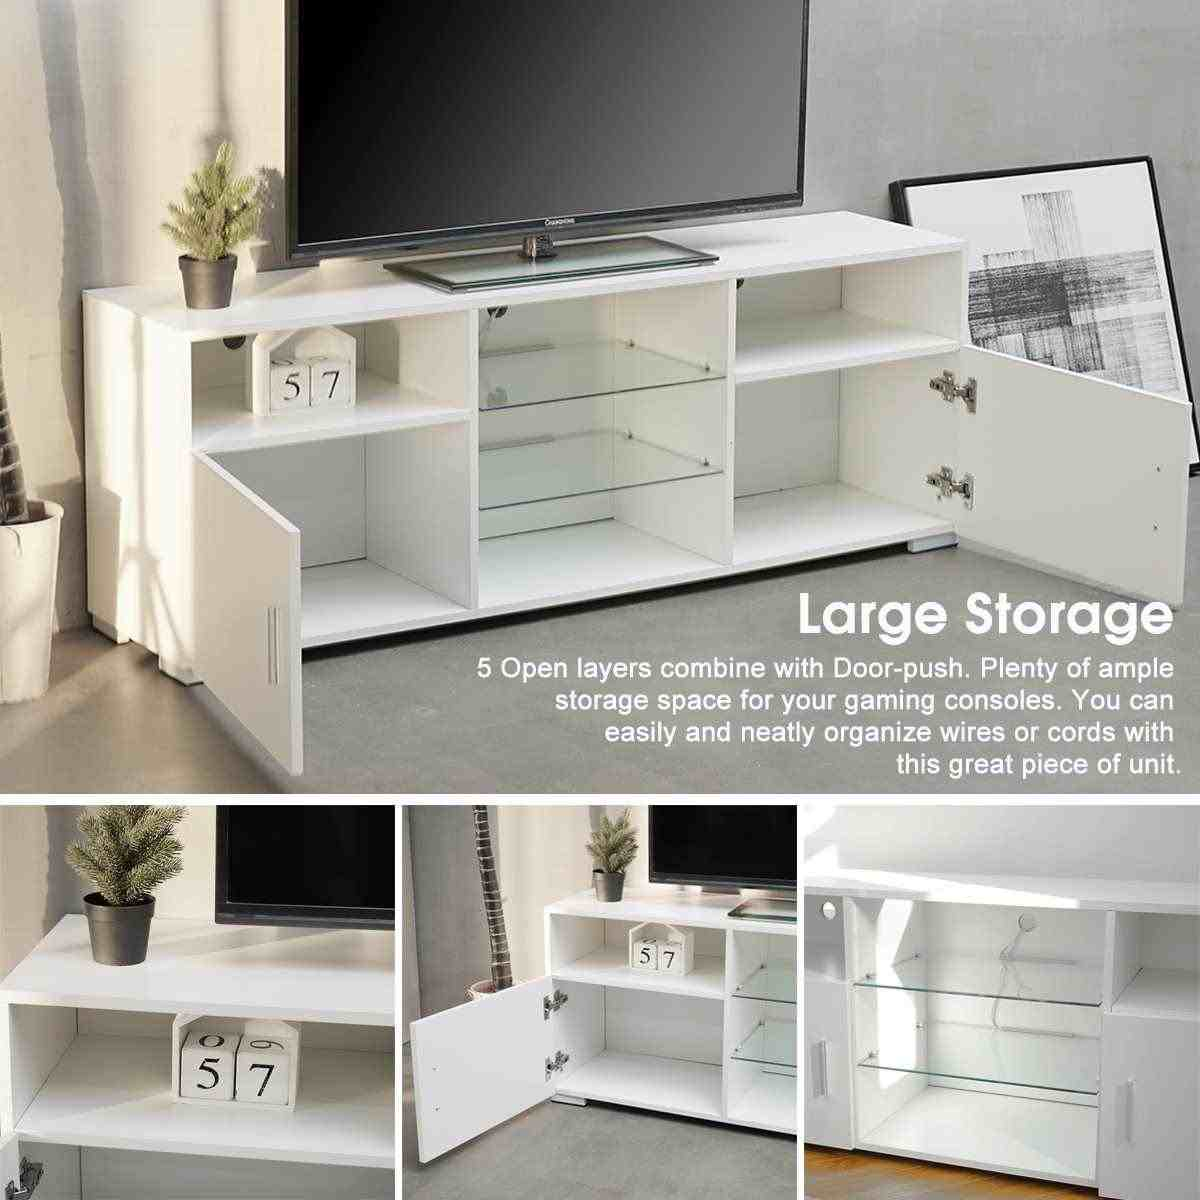 57/'/' TV Stand Cabinet Unit Media Storage Console Table w//LED Light Shelves White